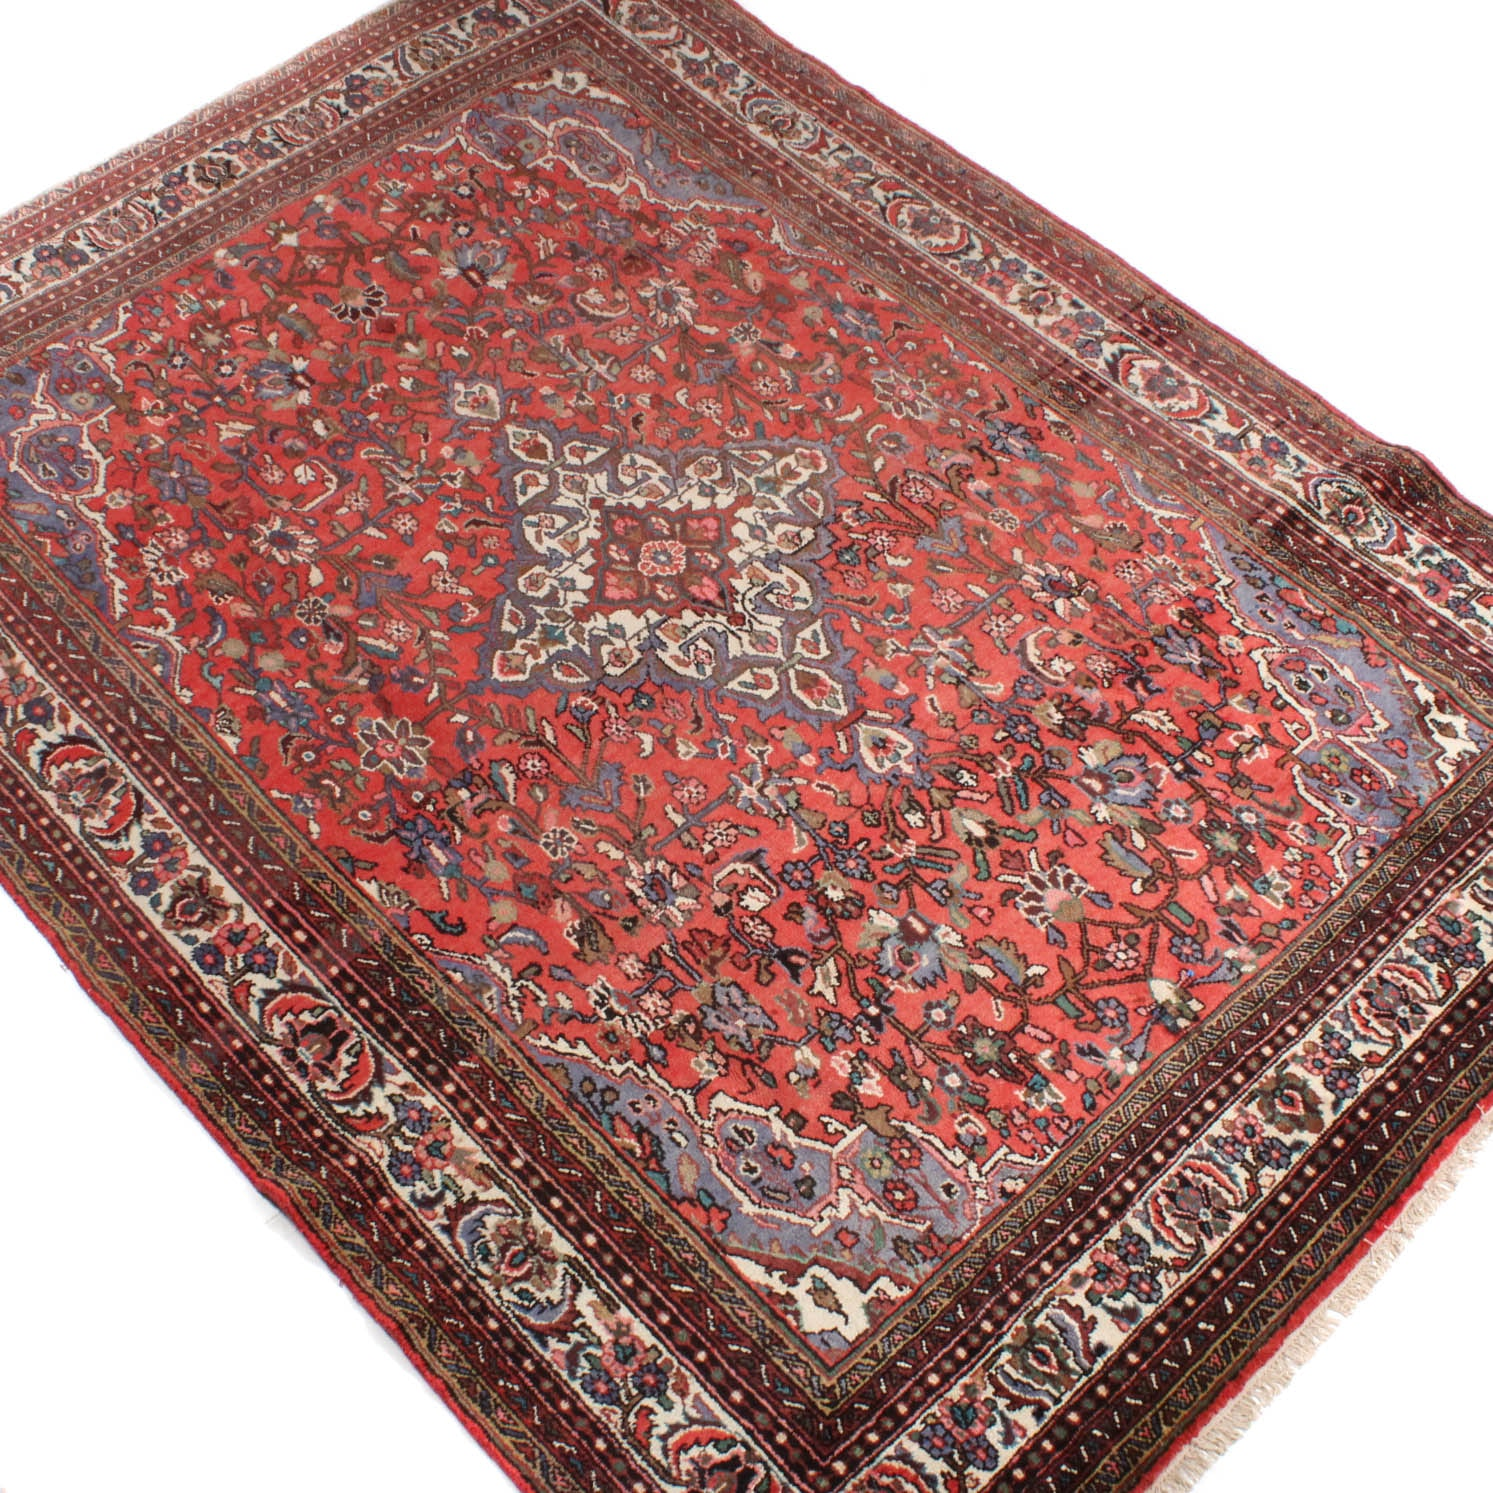 8' x 11' Vintage Hand-Knotted Persian Malayer Sarouk Room Size Rug